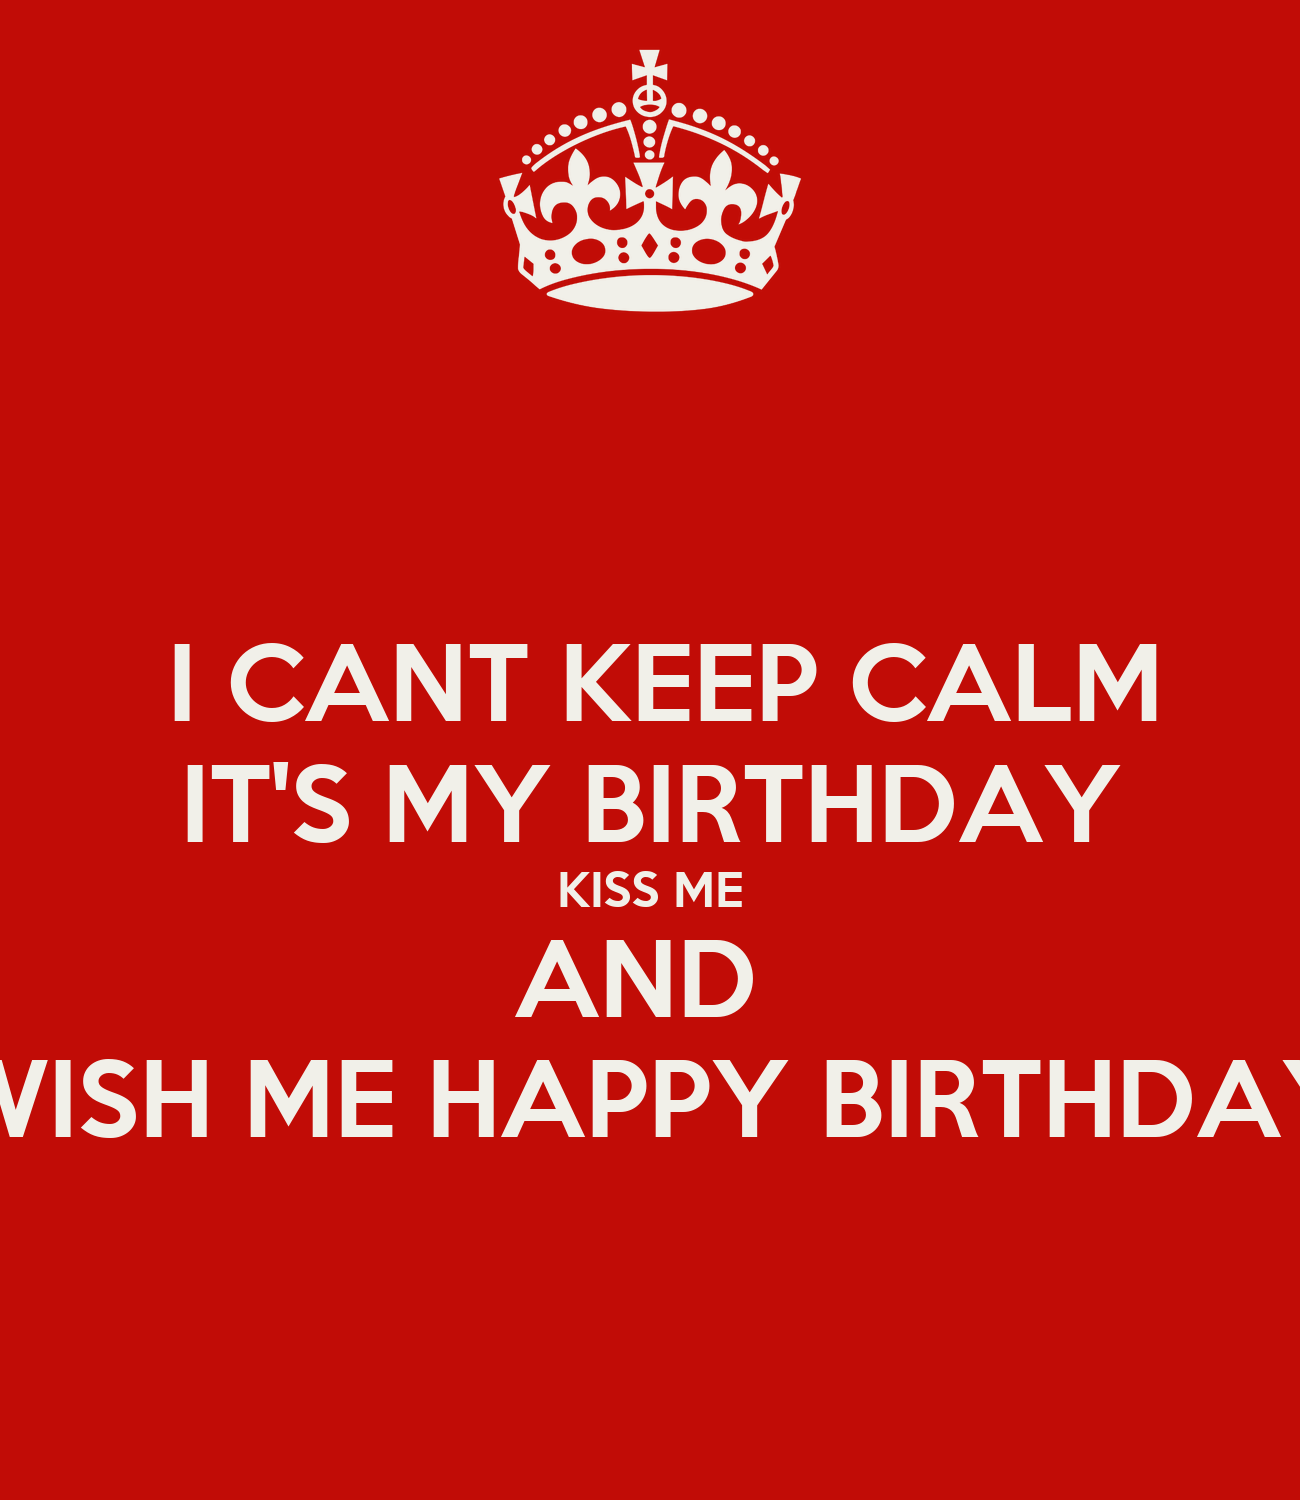 I CANT KEEP CALM IT'S MY BIRTHDAY KISS ME AND WISH ME